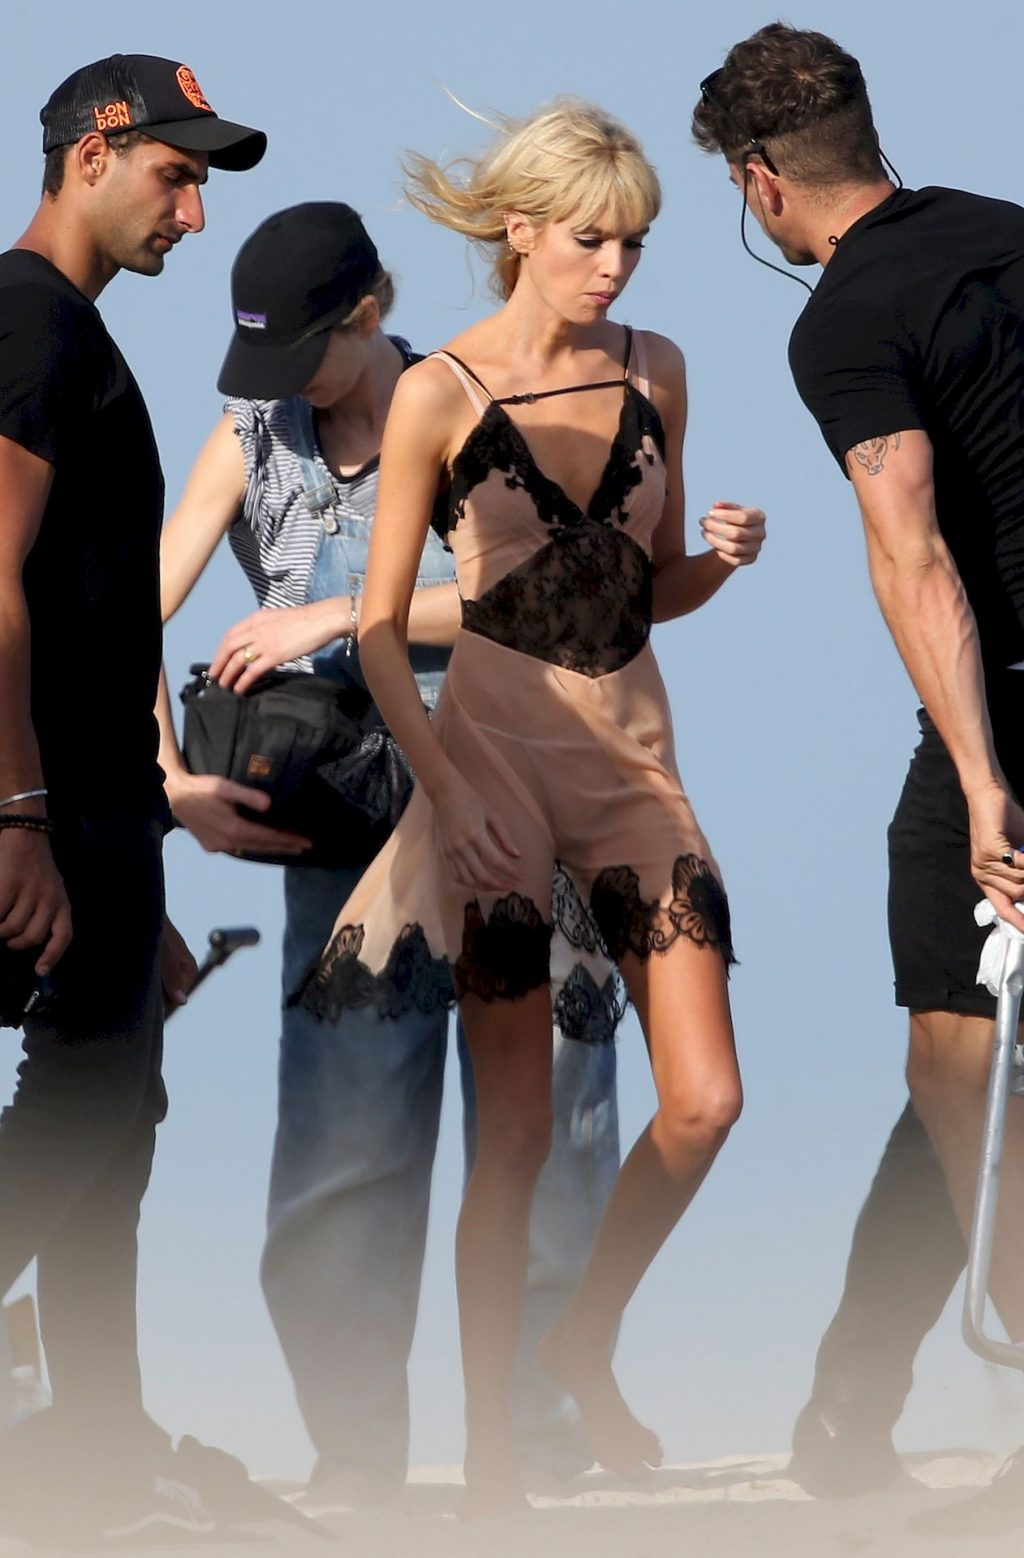 Stella Maxwell Wears Sheer Lingerie During a Photoshoot in Miami (36 Photos)